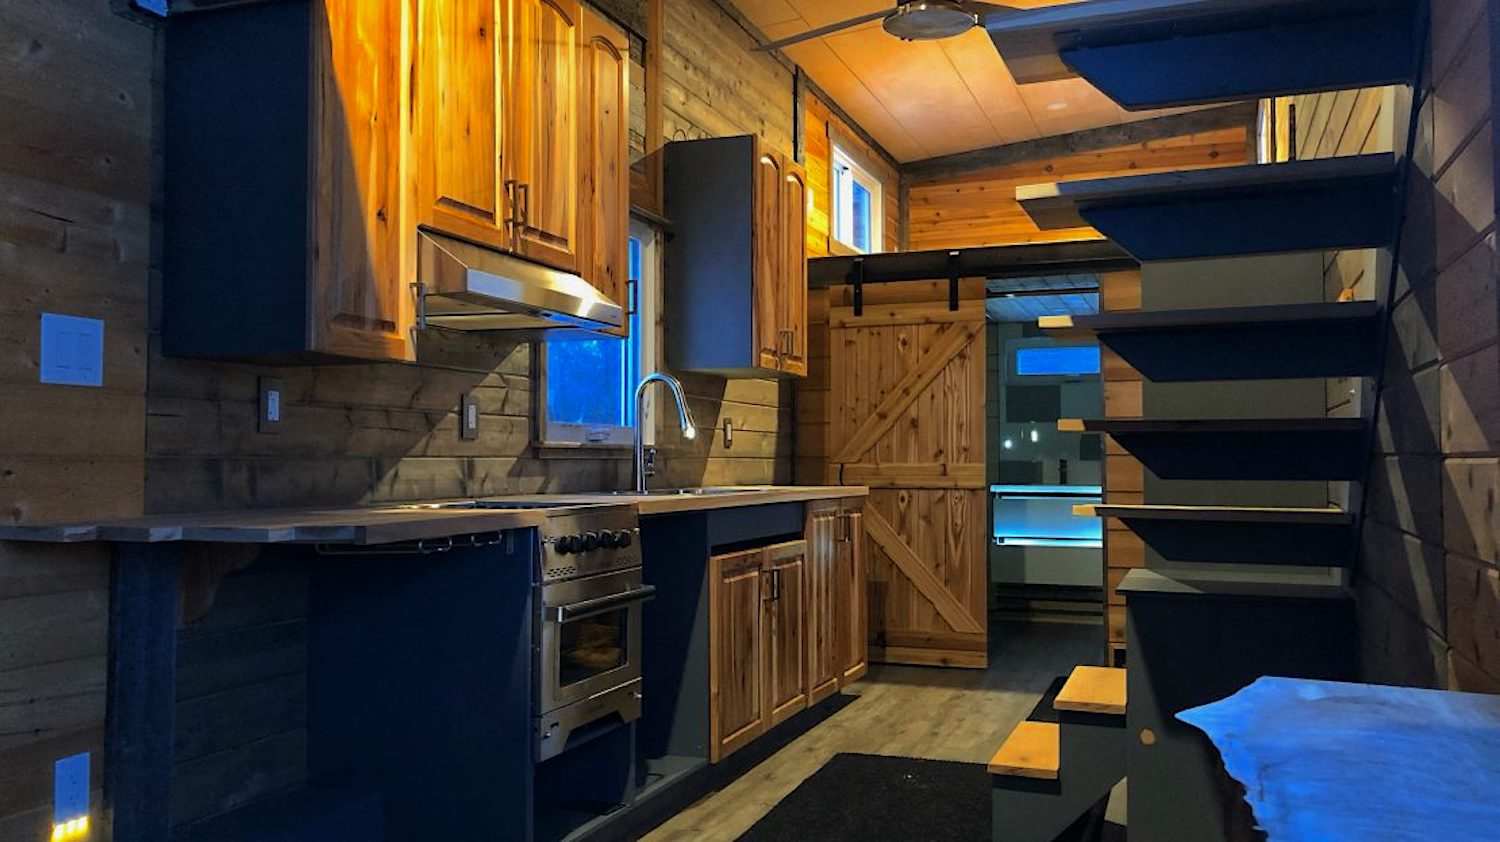 Luxury Tiny Home For Sale In Canada $28,28 CAD – Luxury Residence